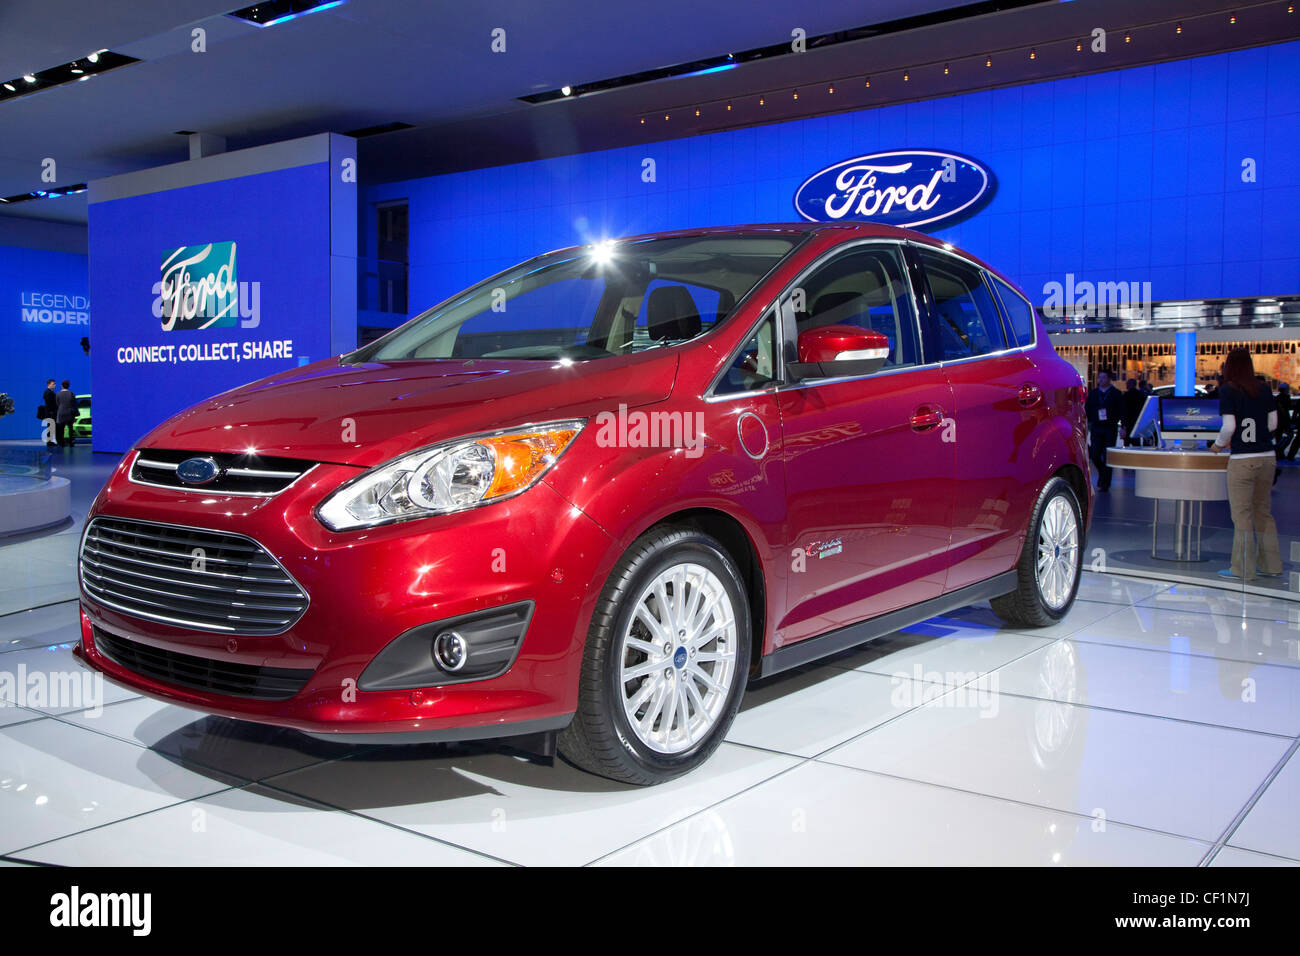 Detroit, Michigan - The 2013 Ford C-Max Energi plug-in hybrid electric car on display at North American International - Stock Image